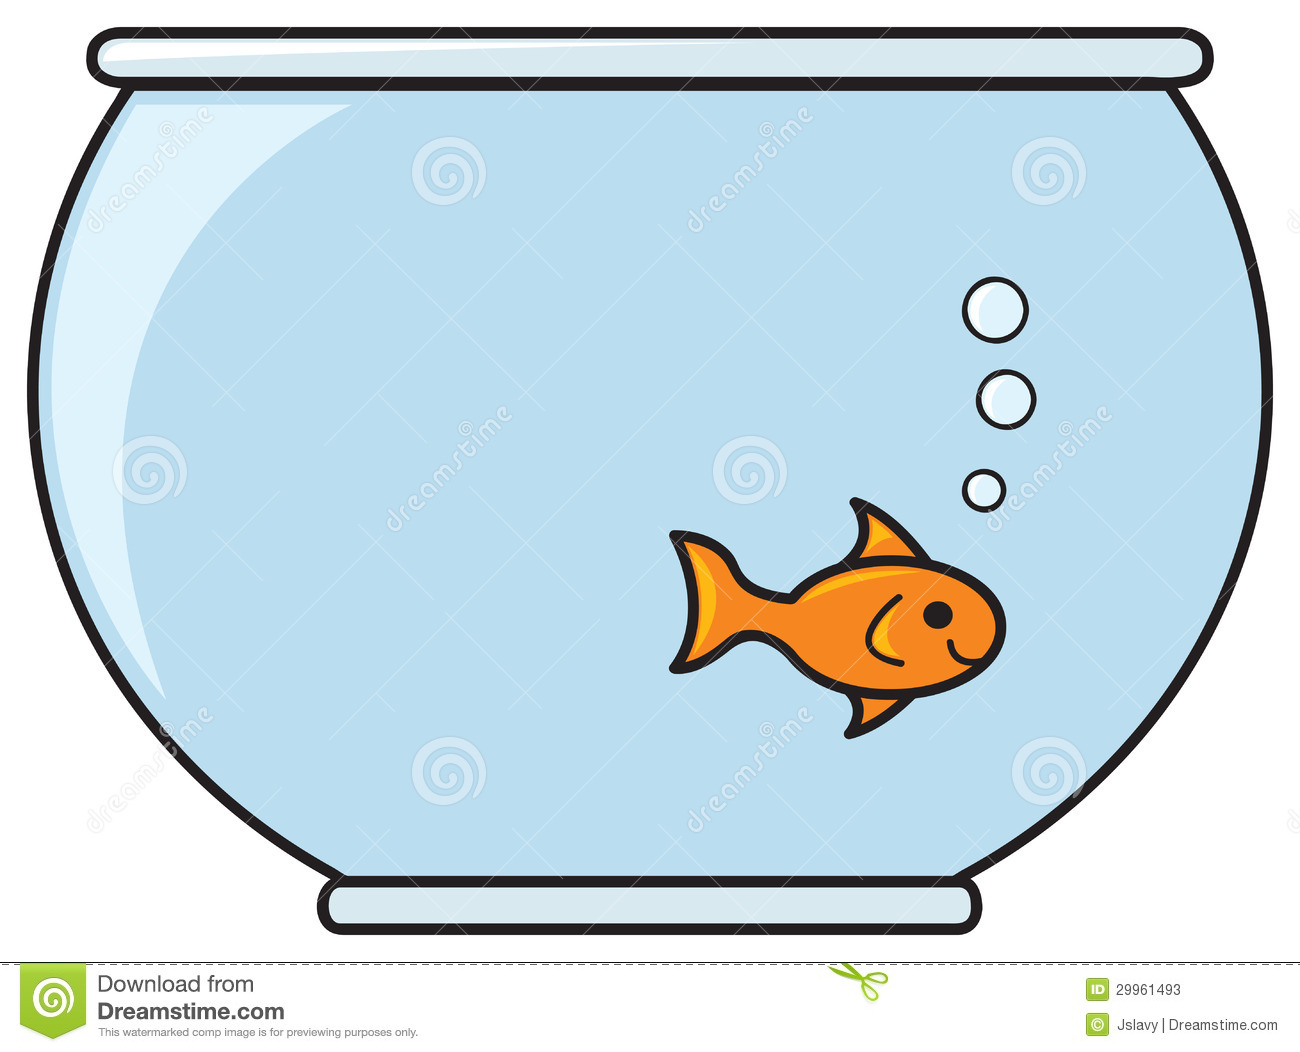 Goldfish bowl clipart free download best goldfish bowl for Easiest fish to care for in a bowl